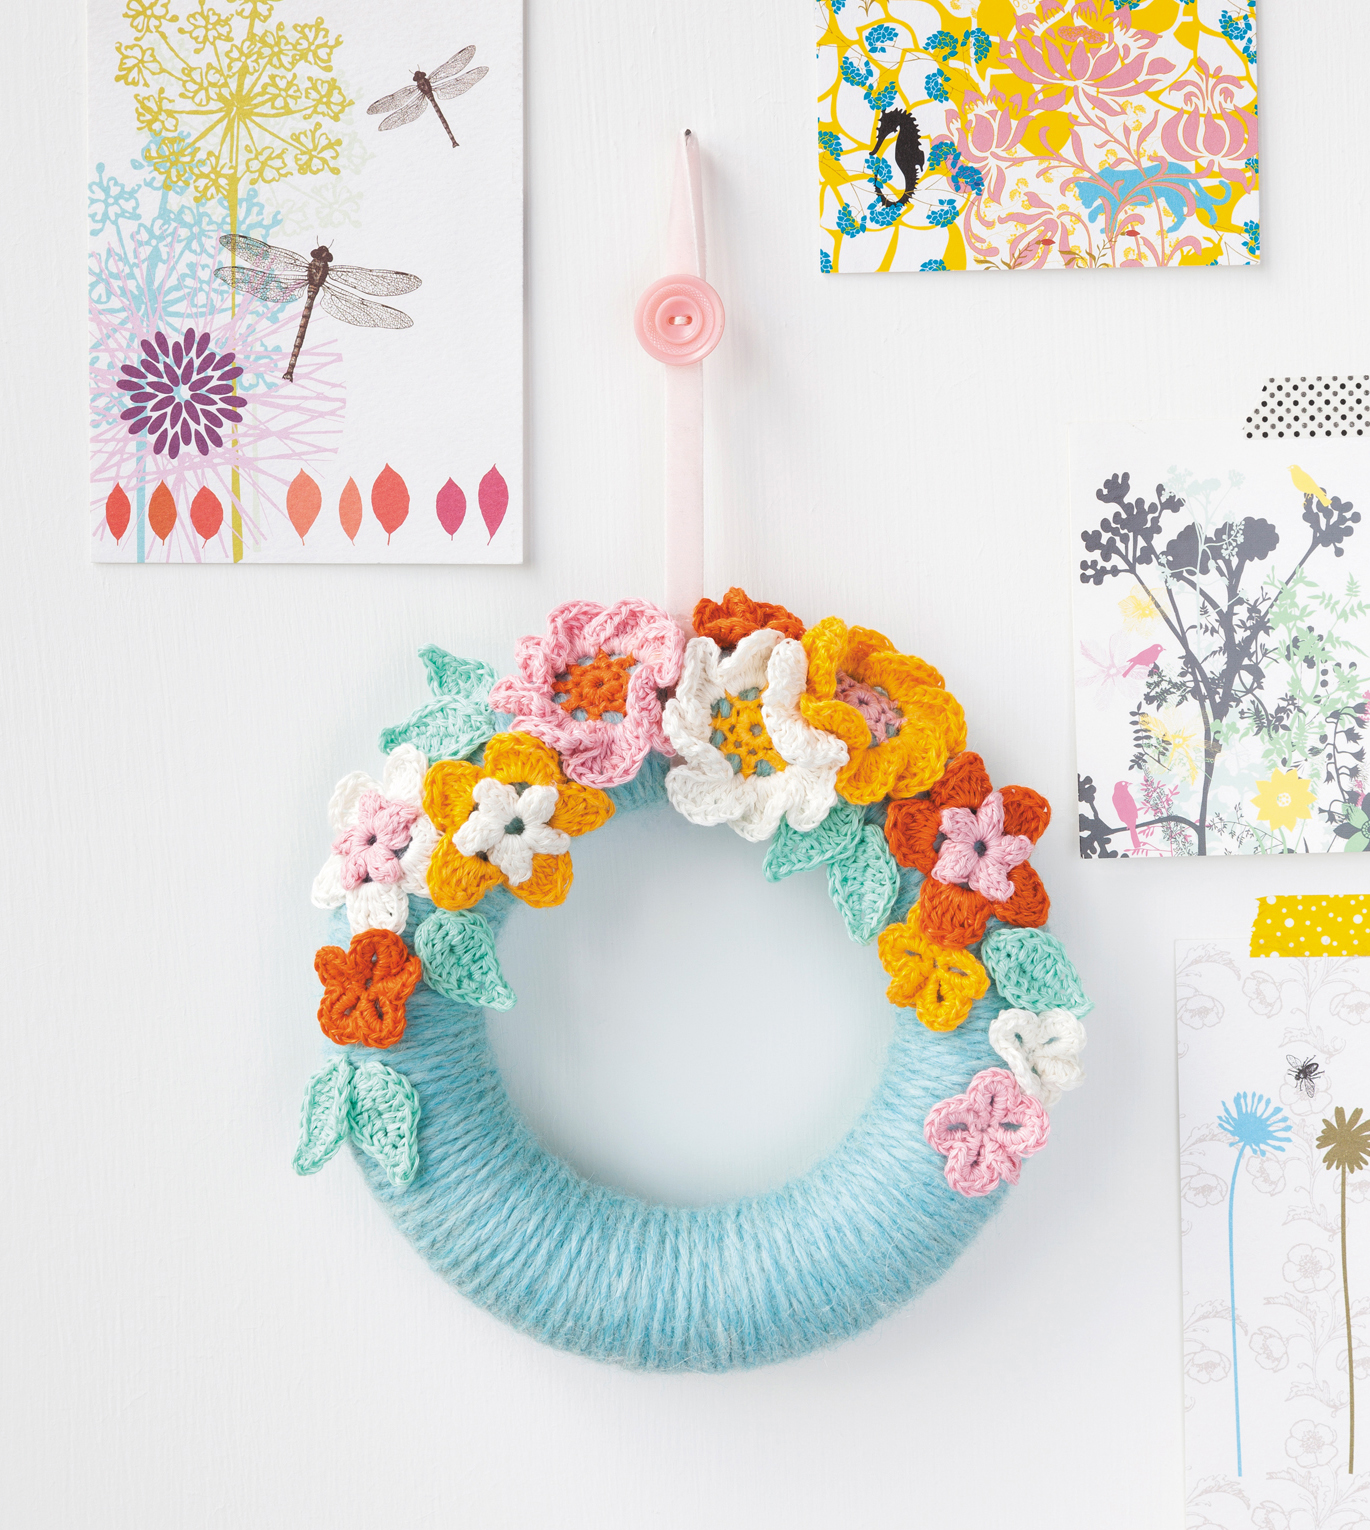 Blossom Wreath from Crochet Home by Emma Lamb